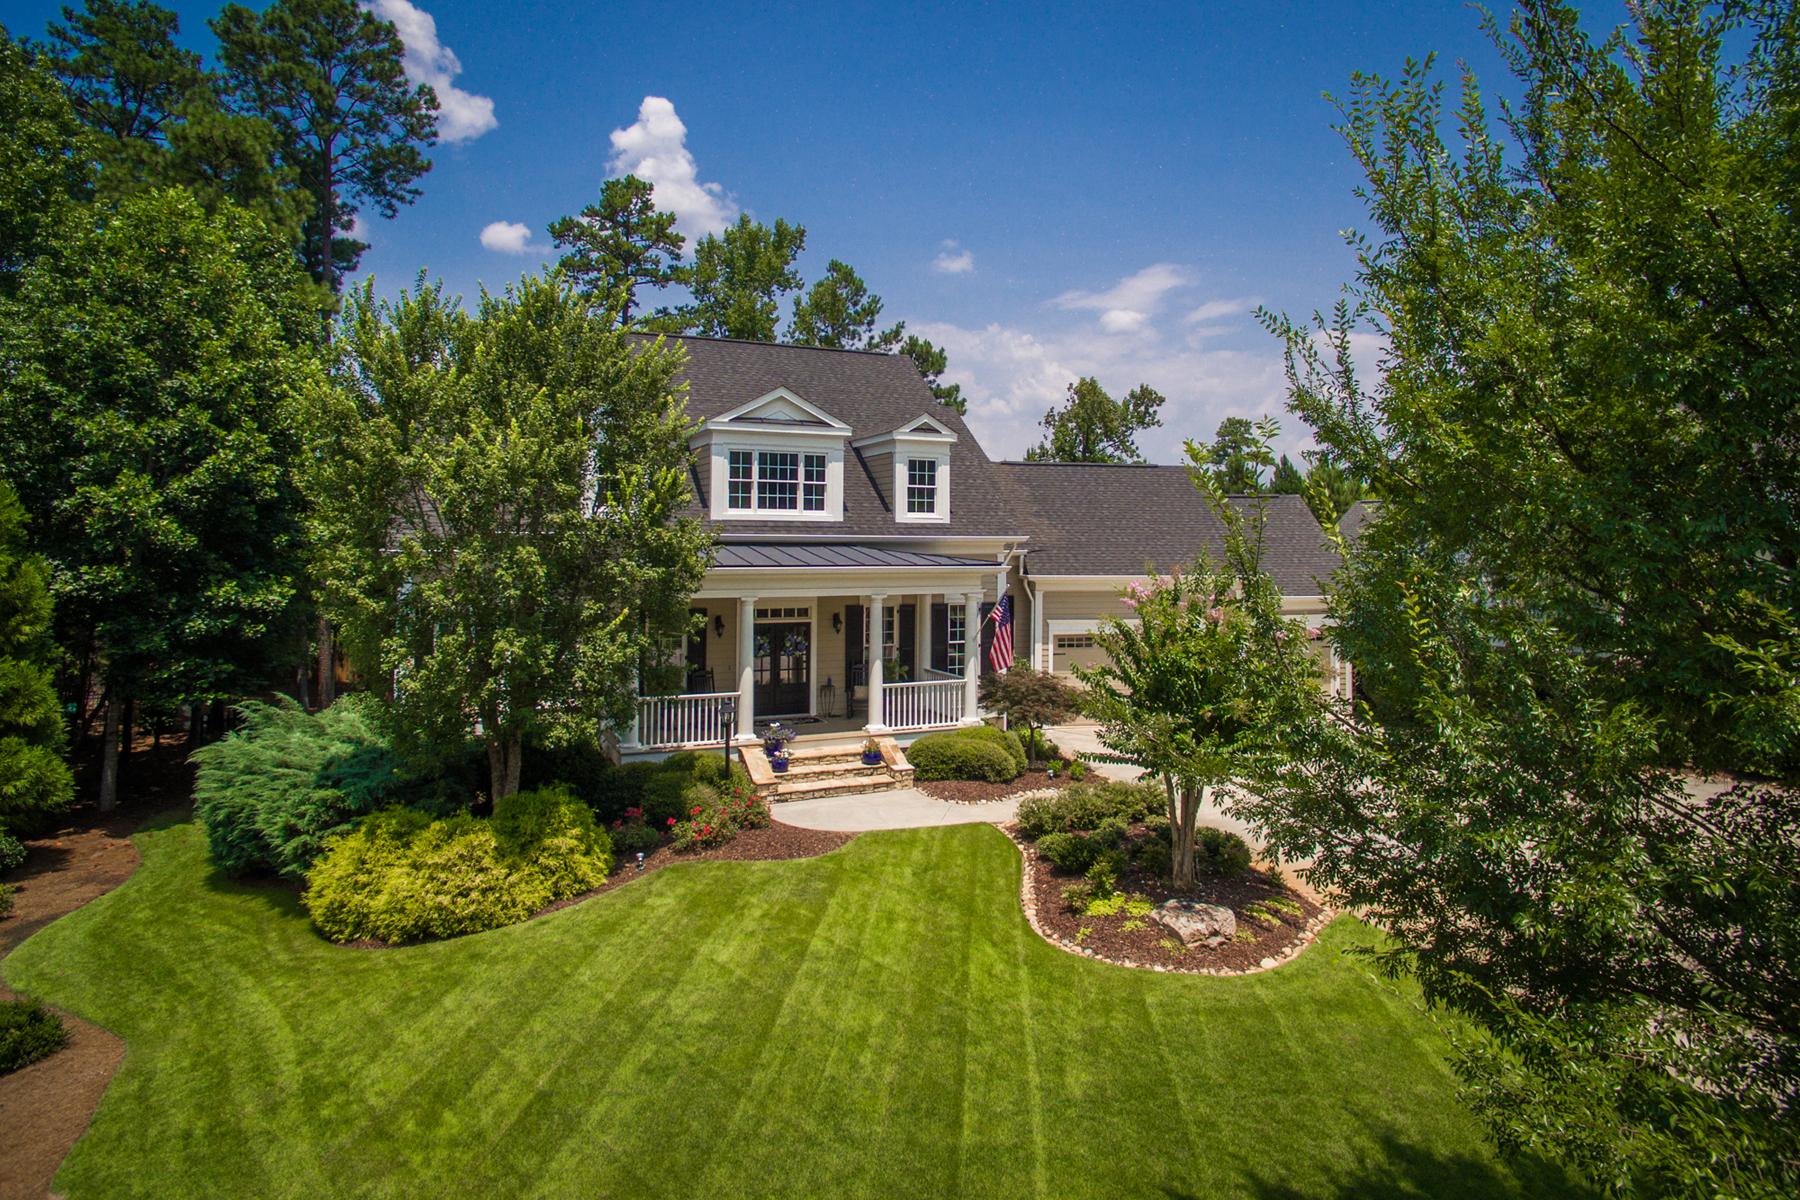 Property For Sale at Immaculate Highgrove Home With Outstanding Finishes And Details